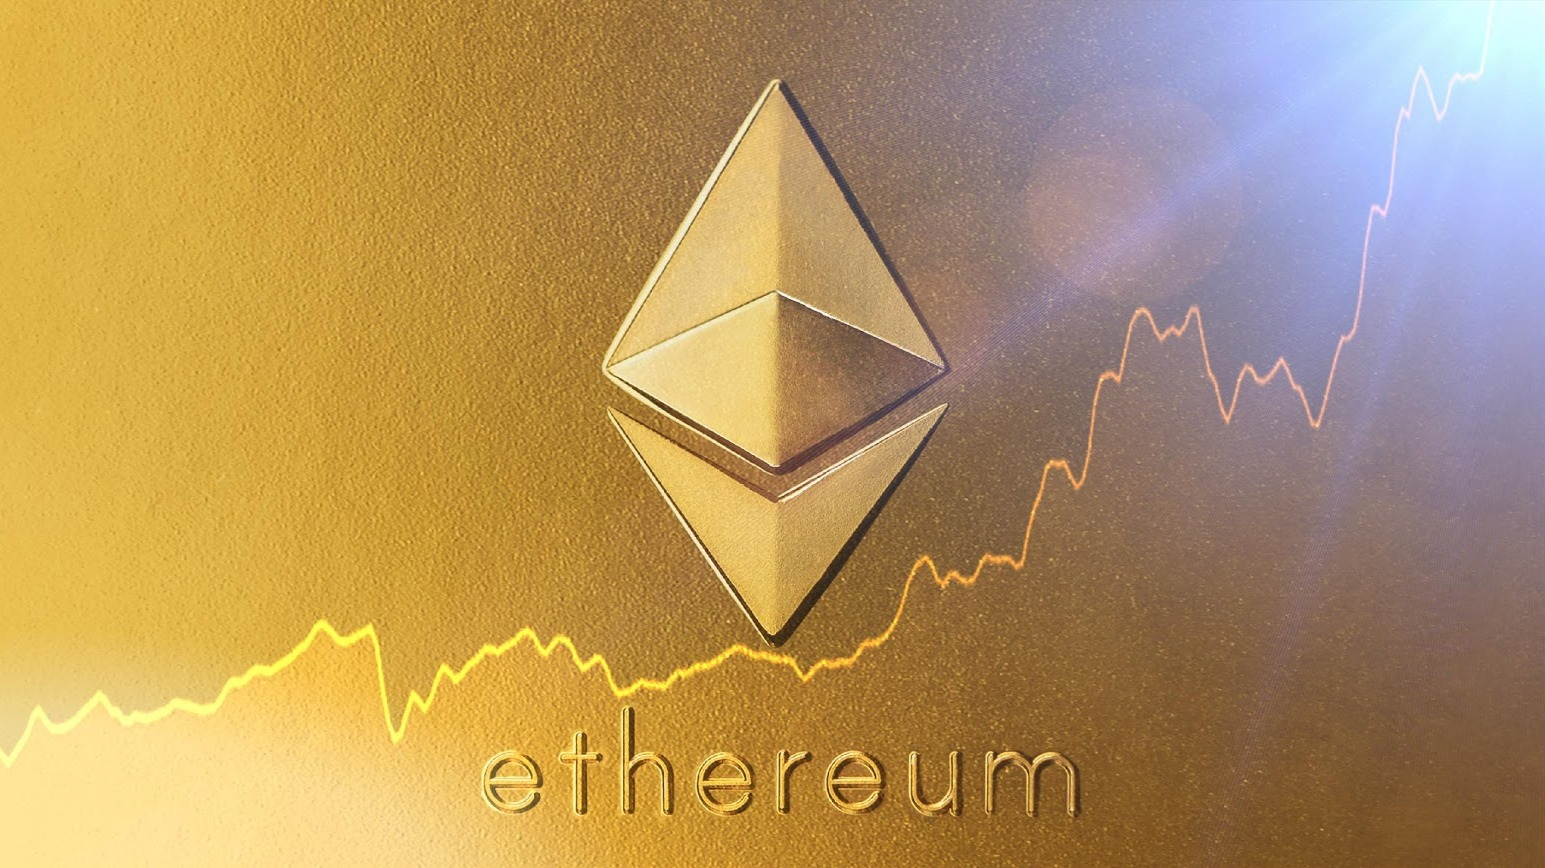 How to trade Ethereum (ETH)?